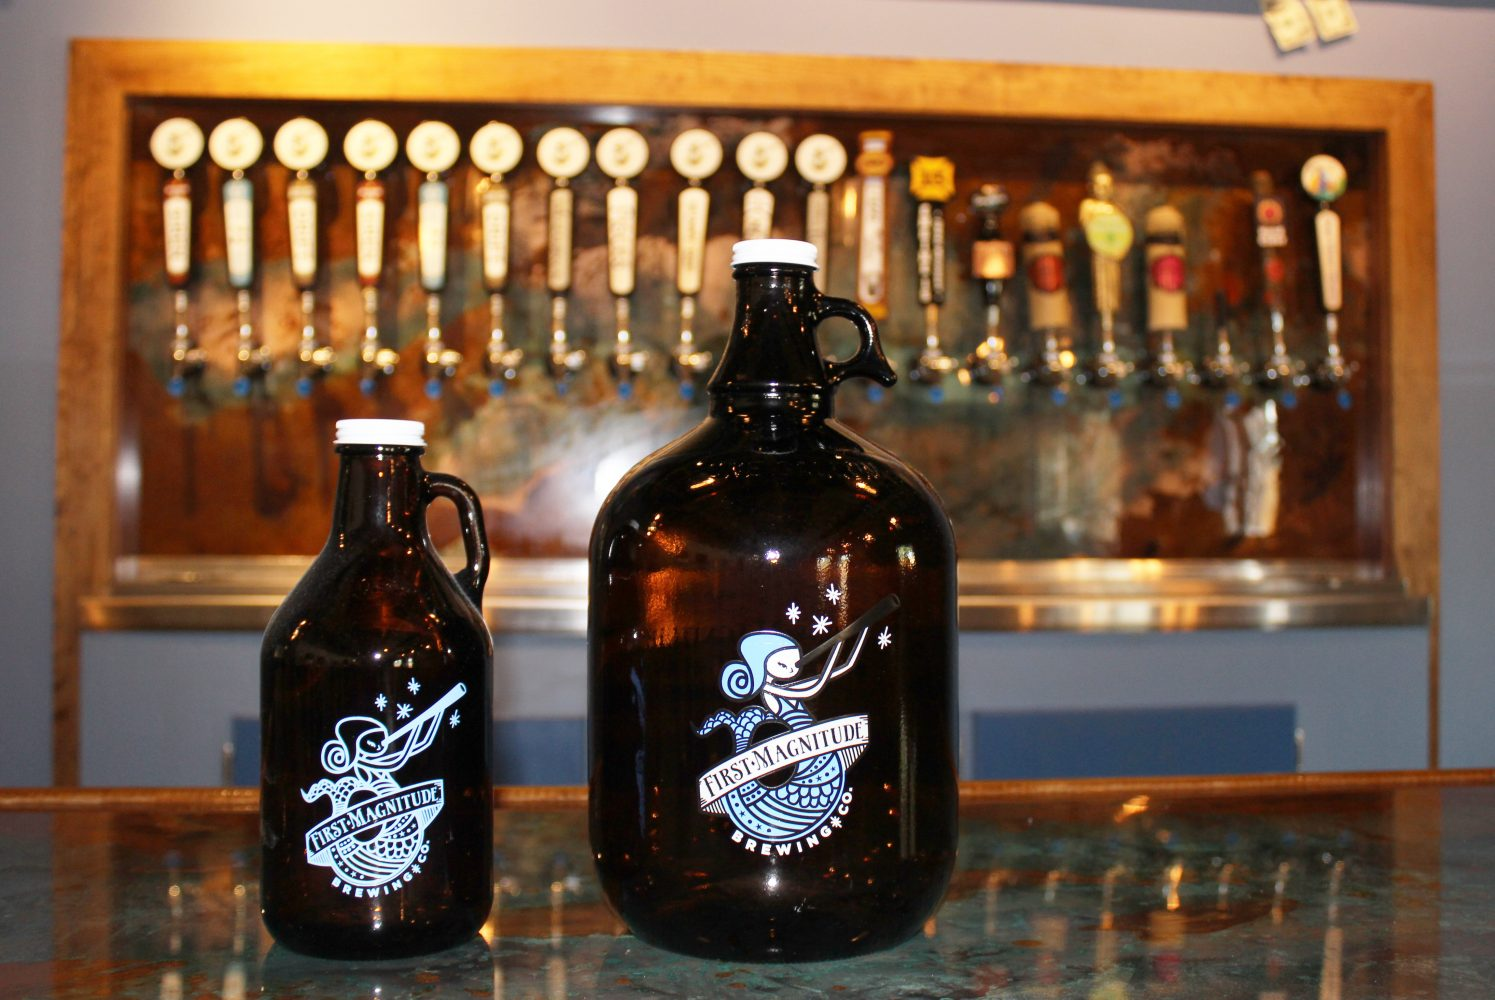 Florida S Craft Beer Industry Sees Growth Despite Growler